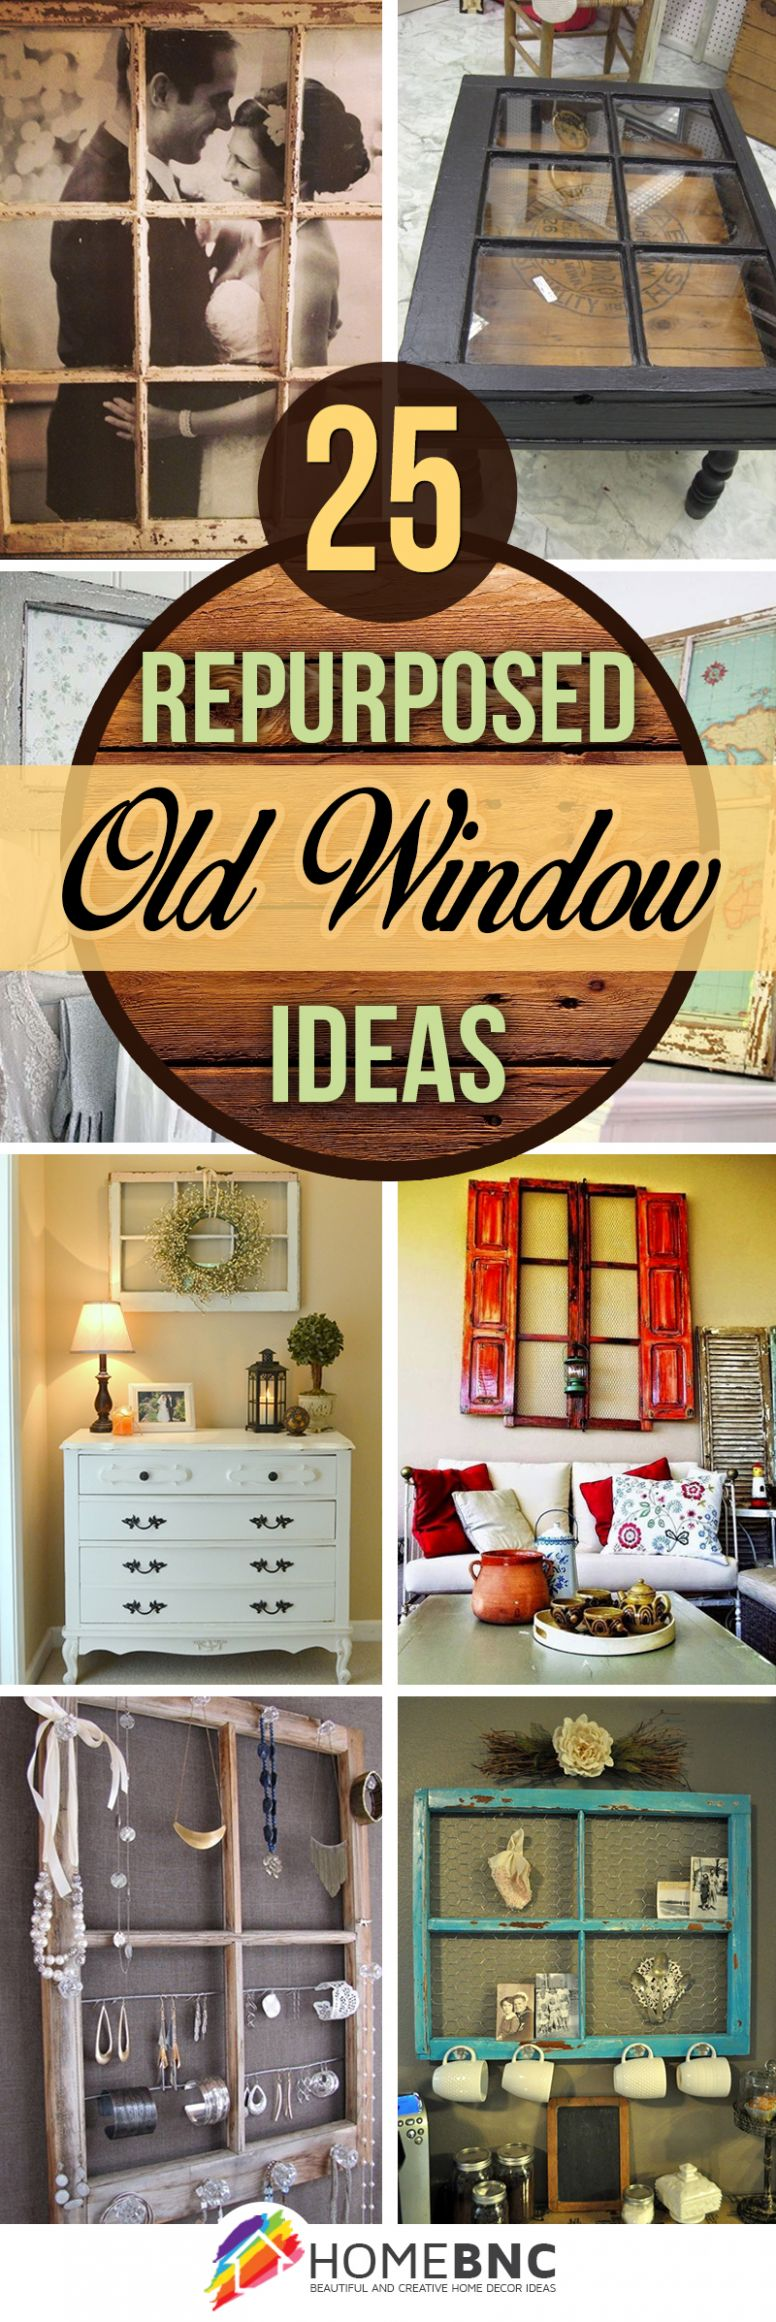 11 Best Repurposed Old Window Ideas and Designs for 11